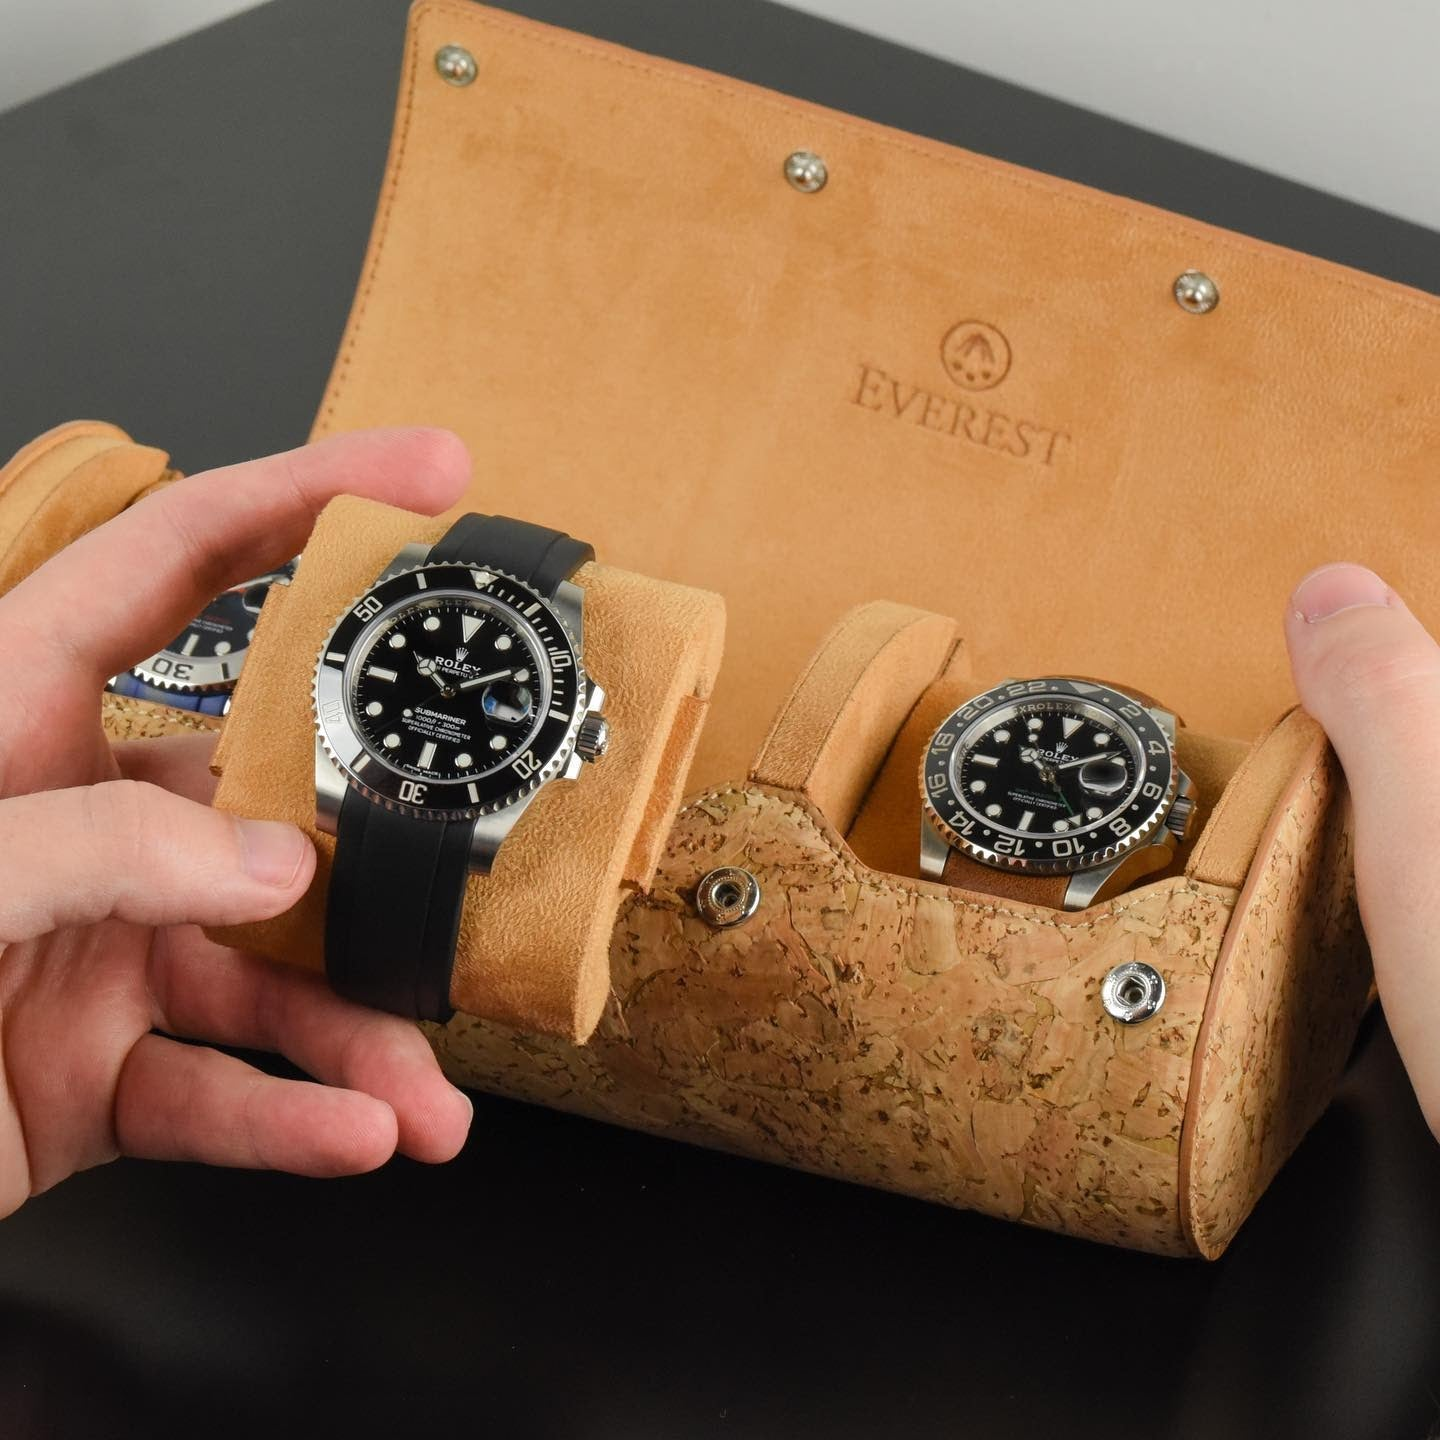 cork watch roll with sliding rail system from everest